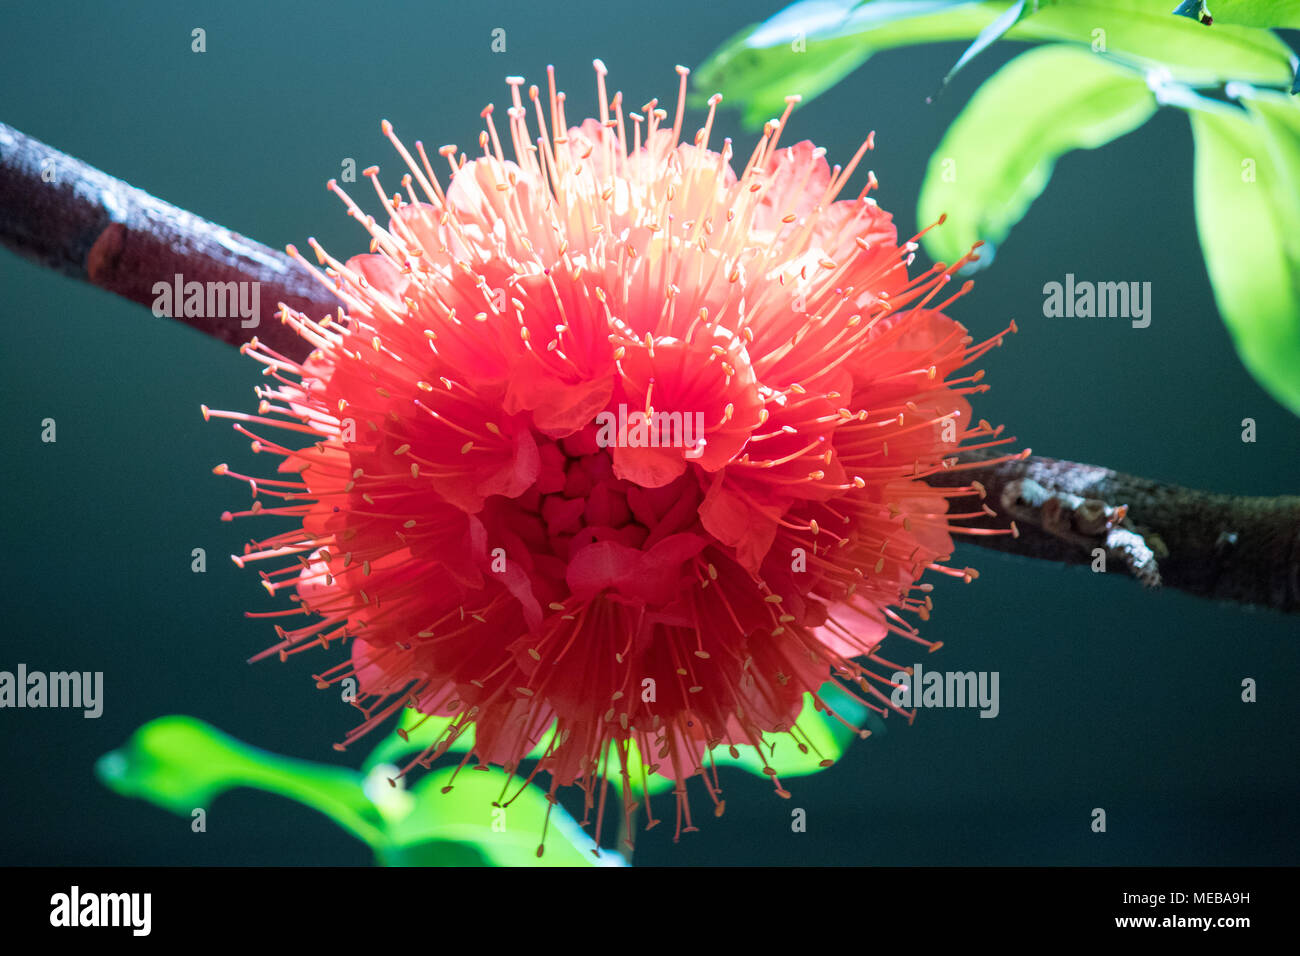 A beautiful tropical flower in bloom stock photo 180958445 alamy a beautiful tropical flower in bloom izmirmasajfo